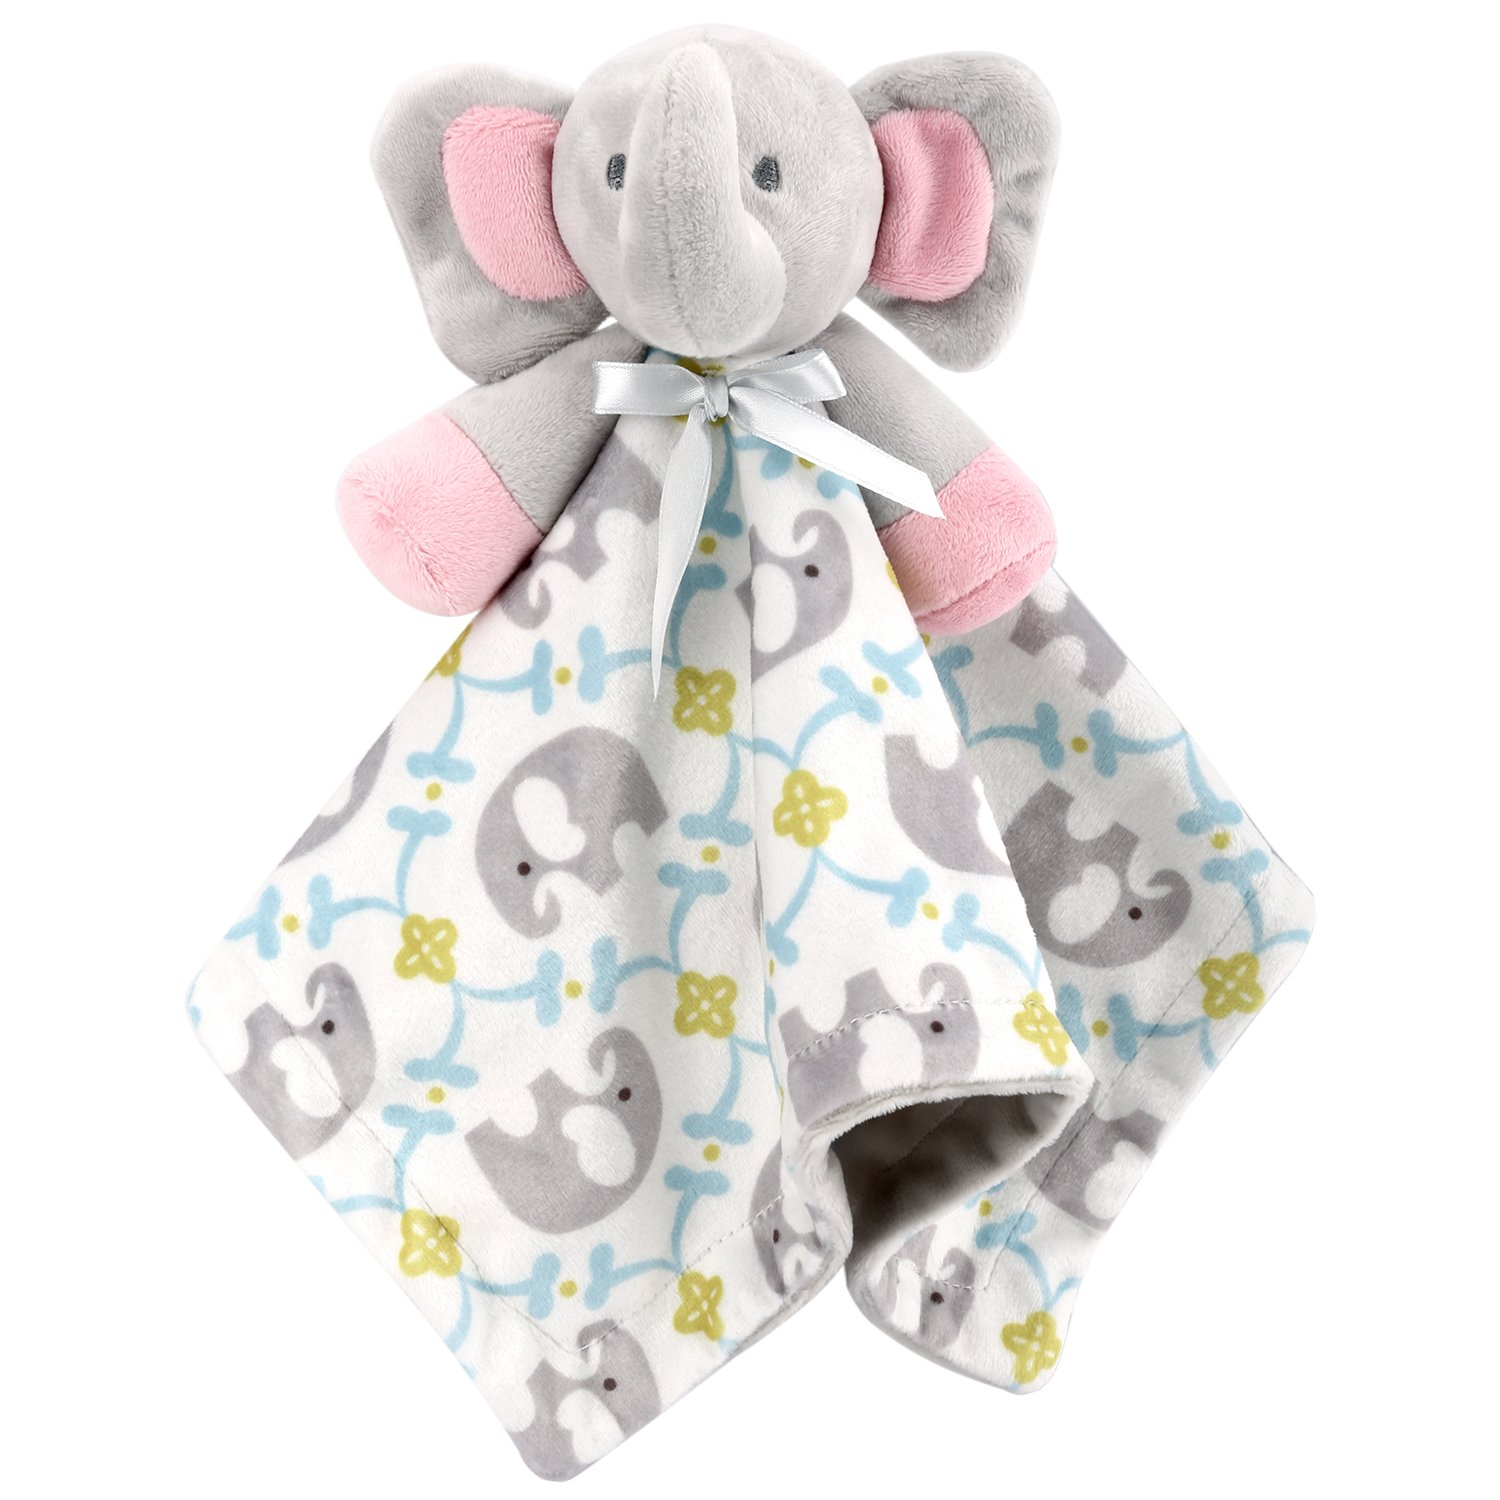 Amazon Com Zooawa Baby Security Blanket Soft Stuffed Animal